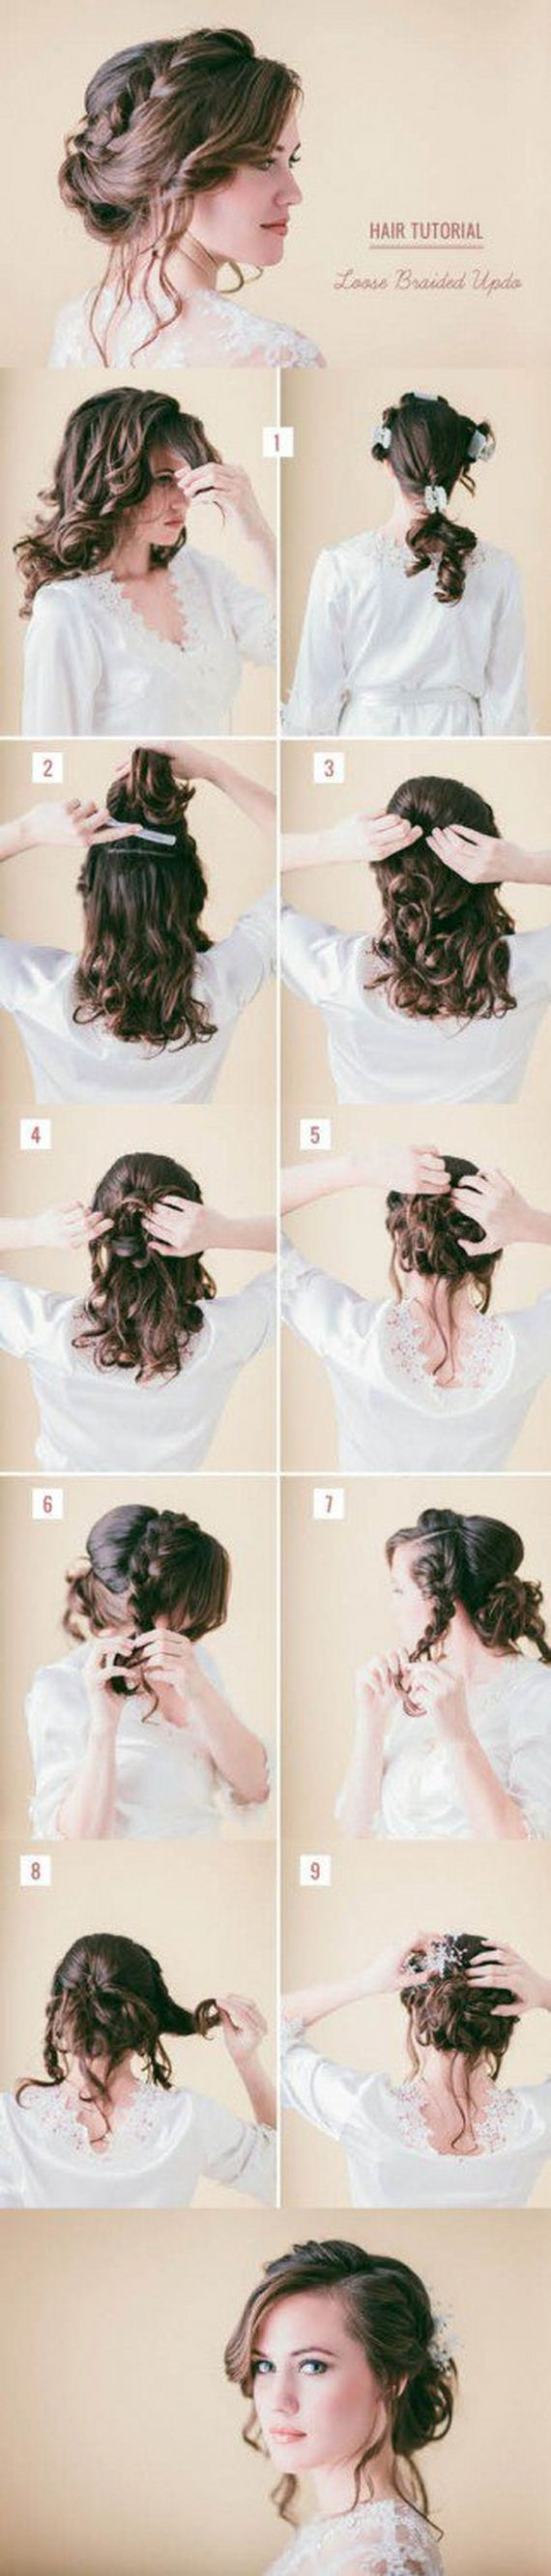 Prom Hairstyles For Long Hair Diy : Amazing diy hairstyles for long hair